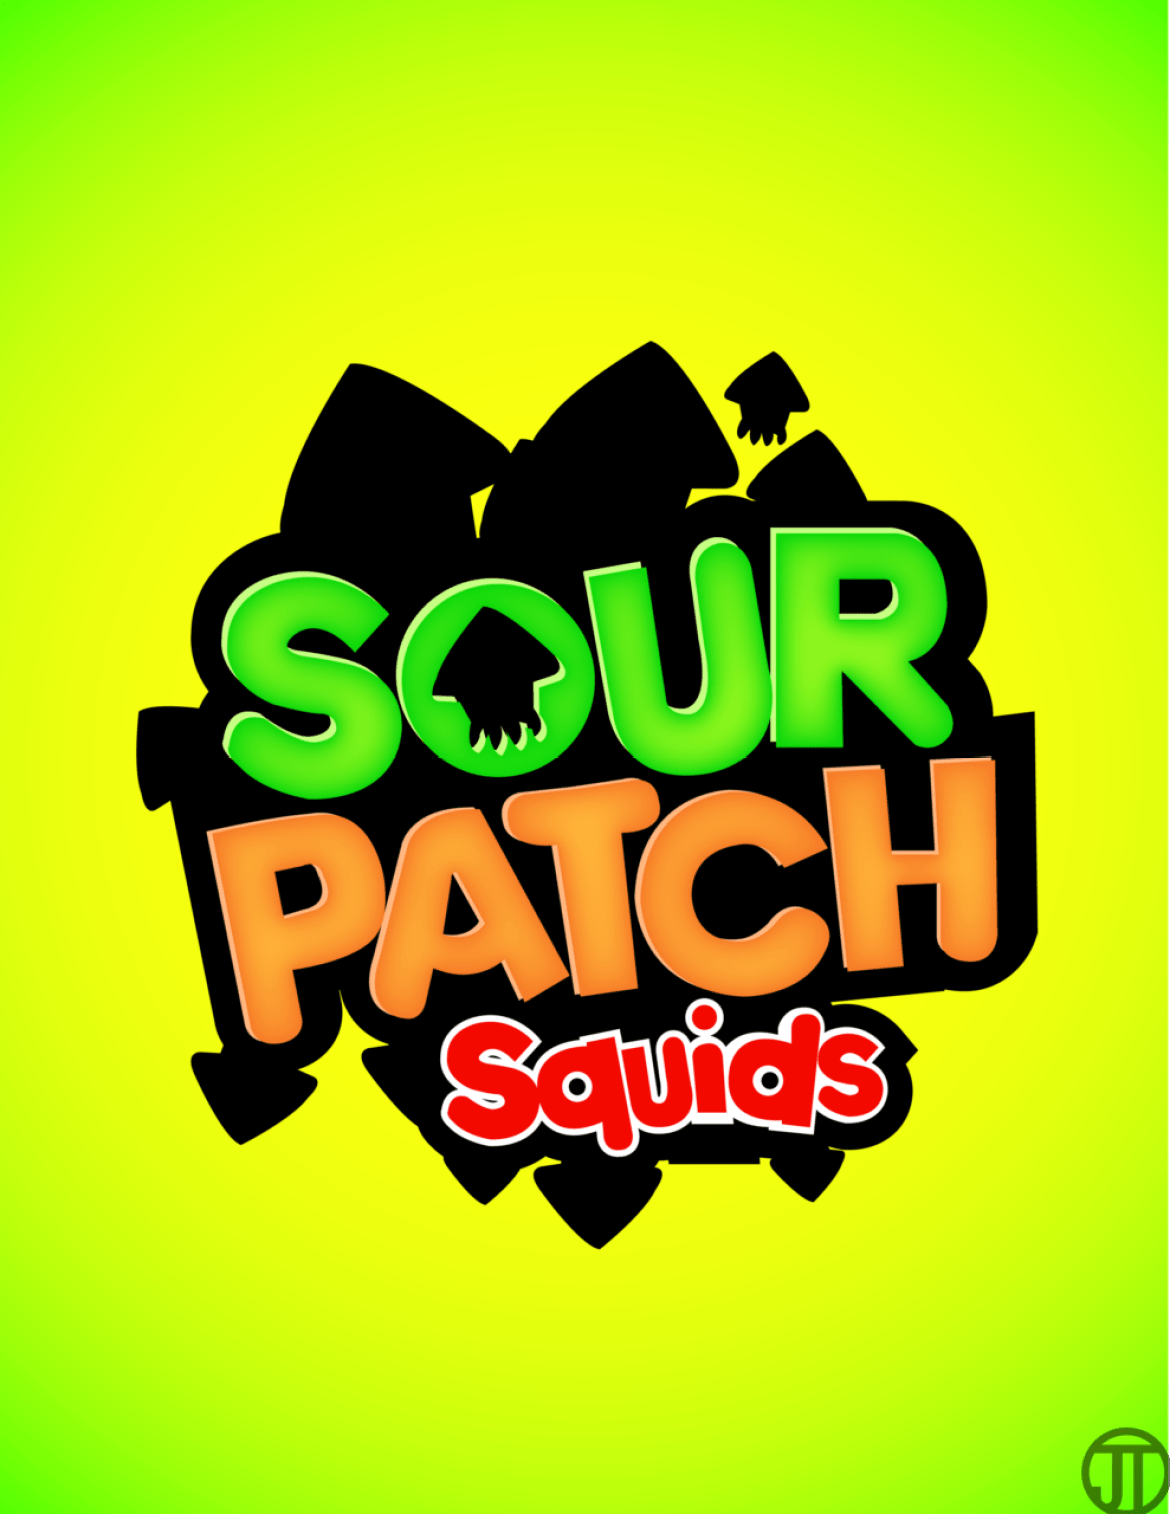 Sour Patch Squids